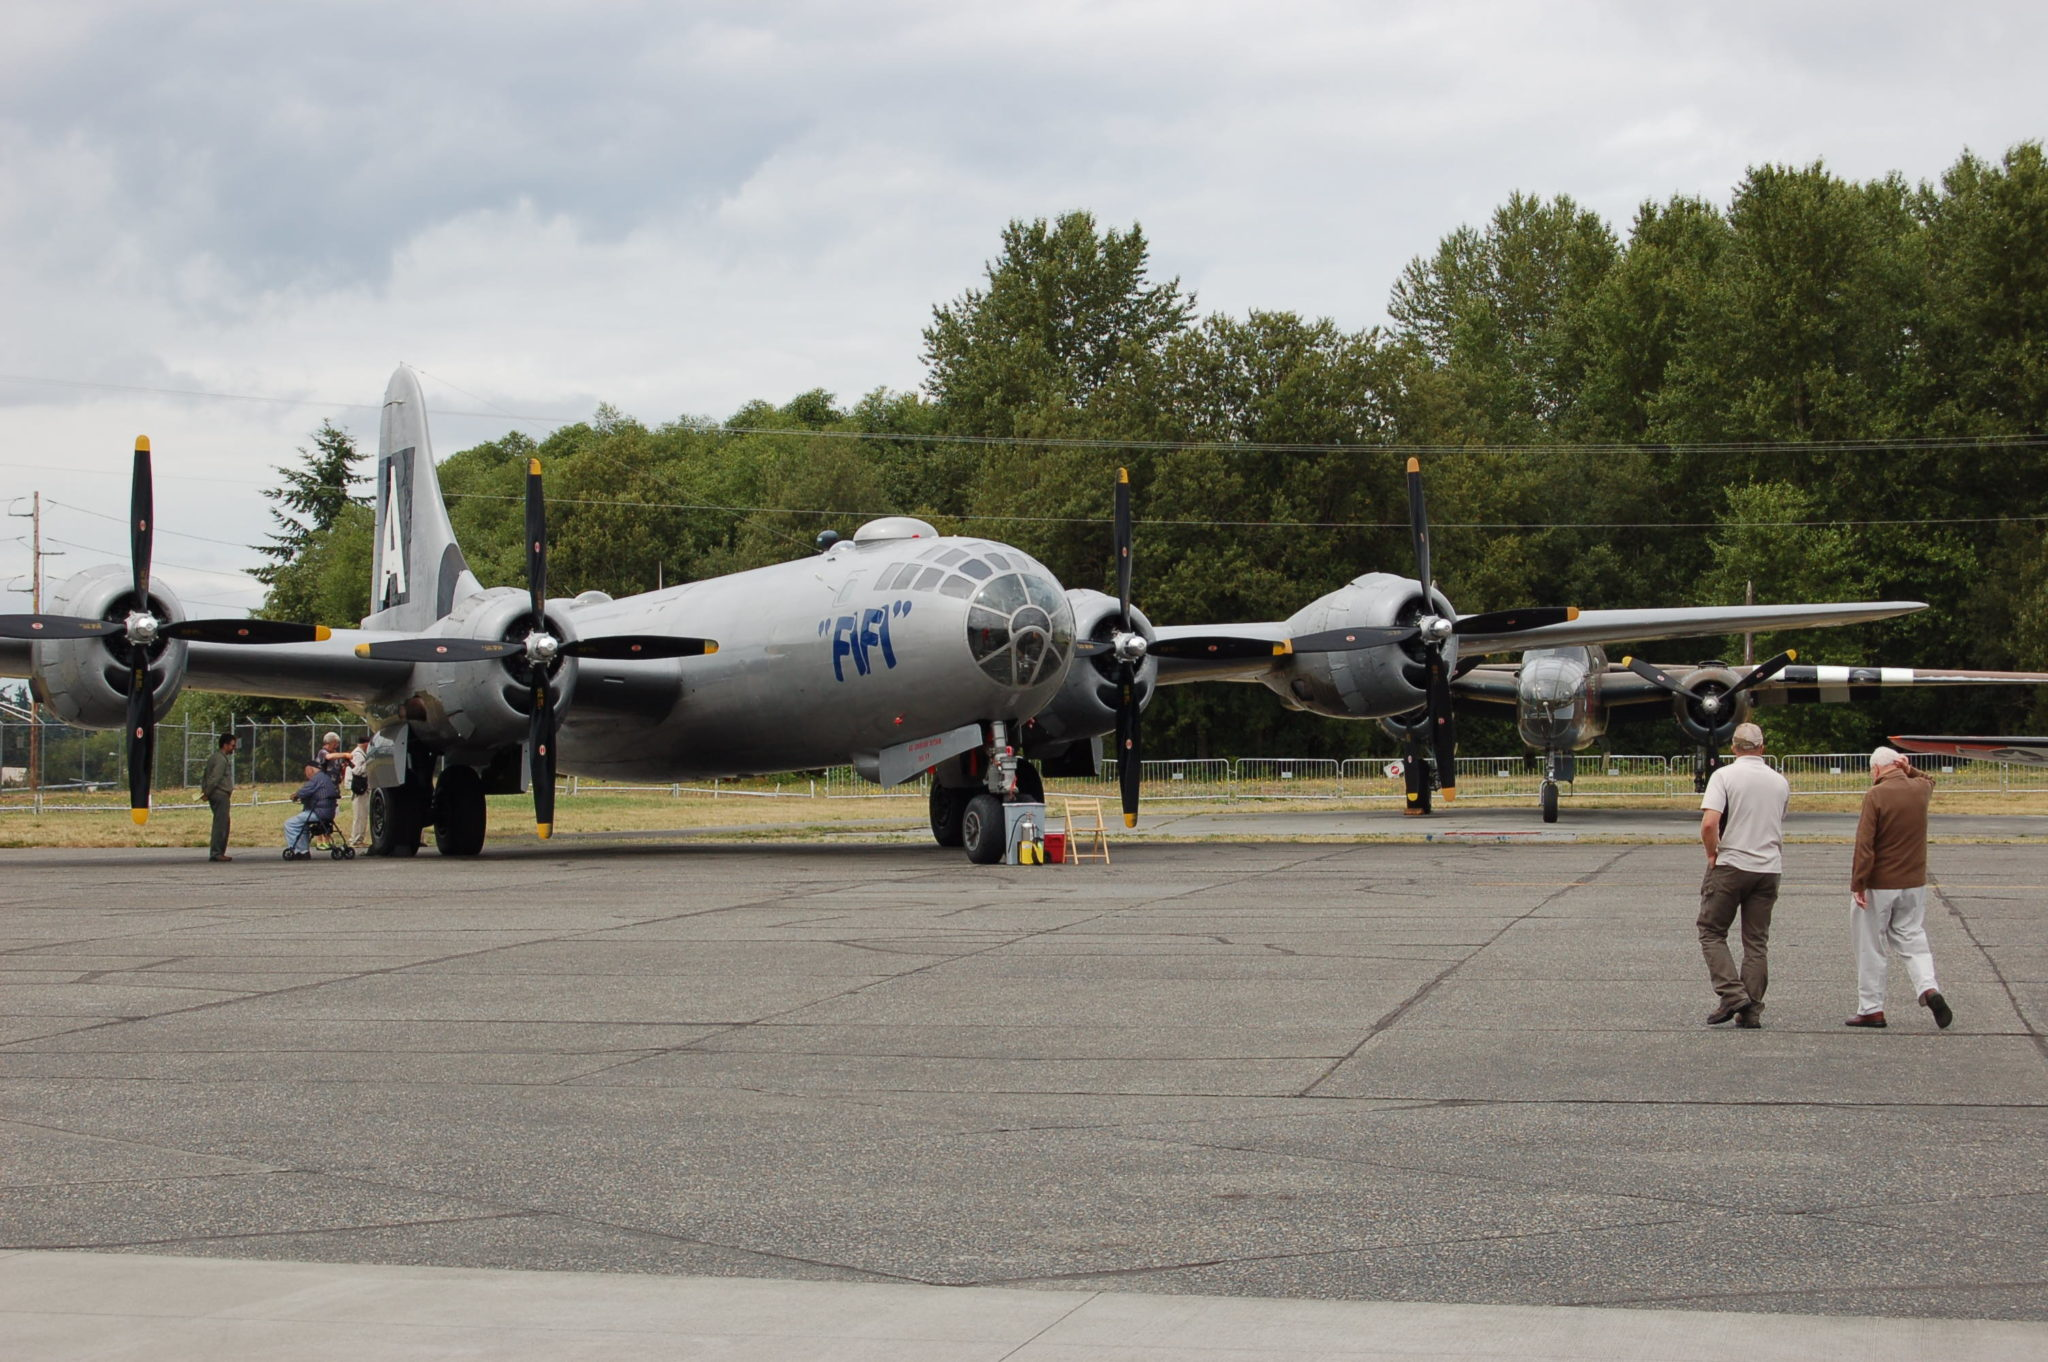 The Commemorative Air Force Boeing B-29, the only airworthy example. Shown at the Historic Flight Foundation, July 2014. Photo by Scott Hamilton